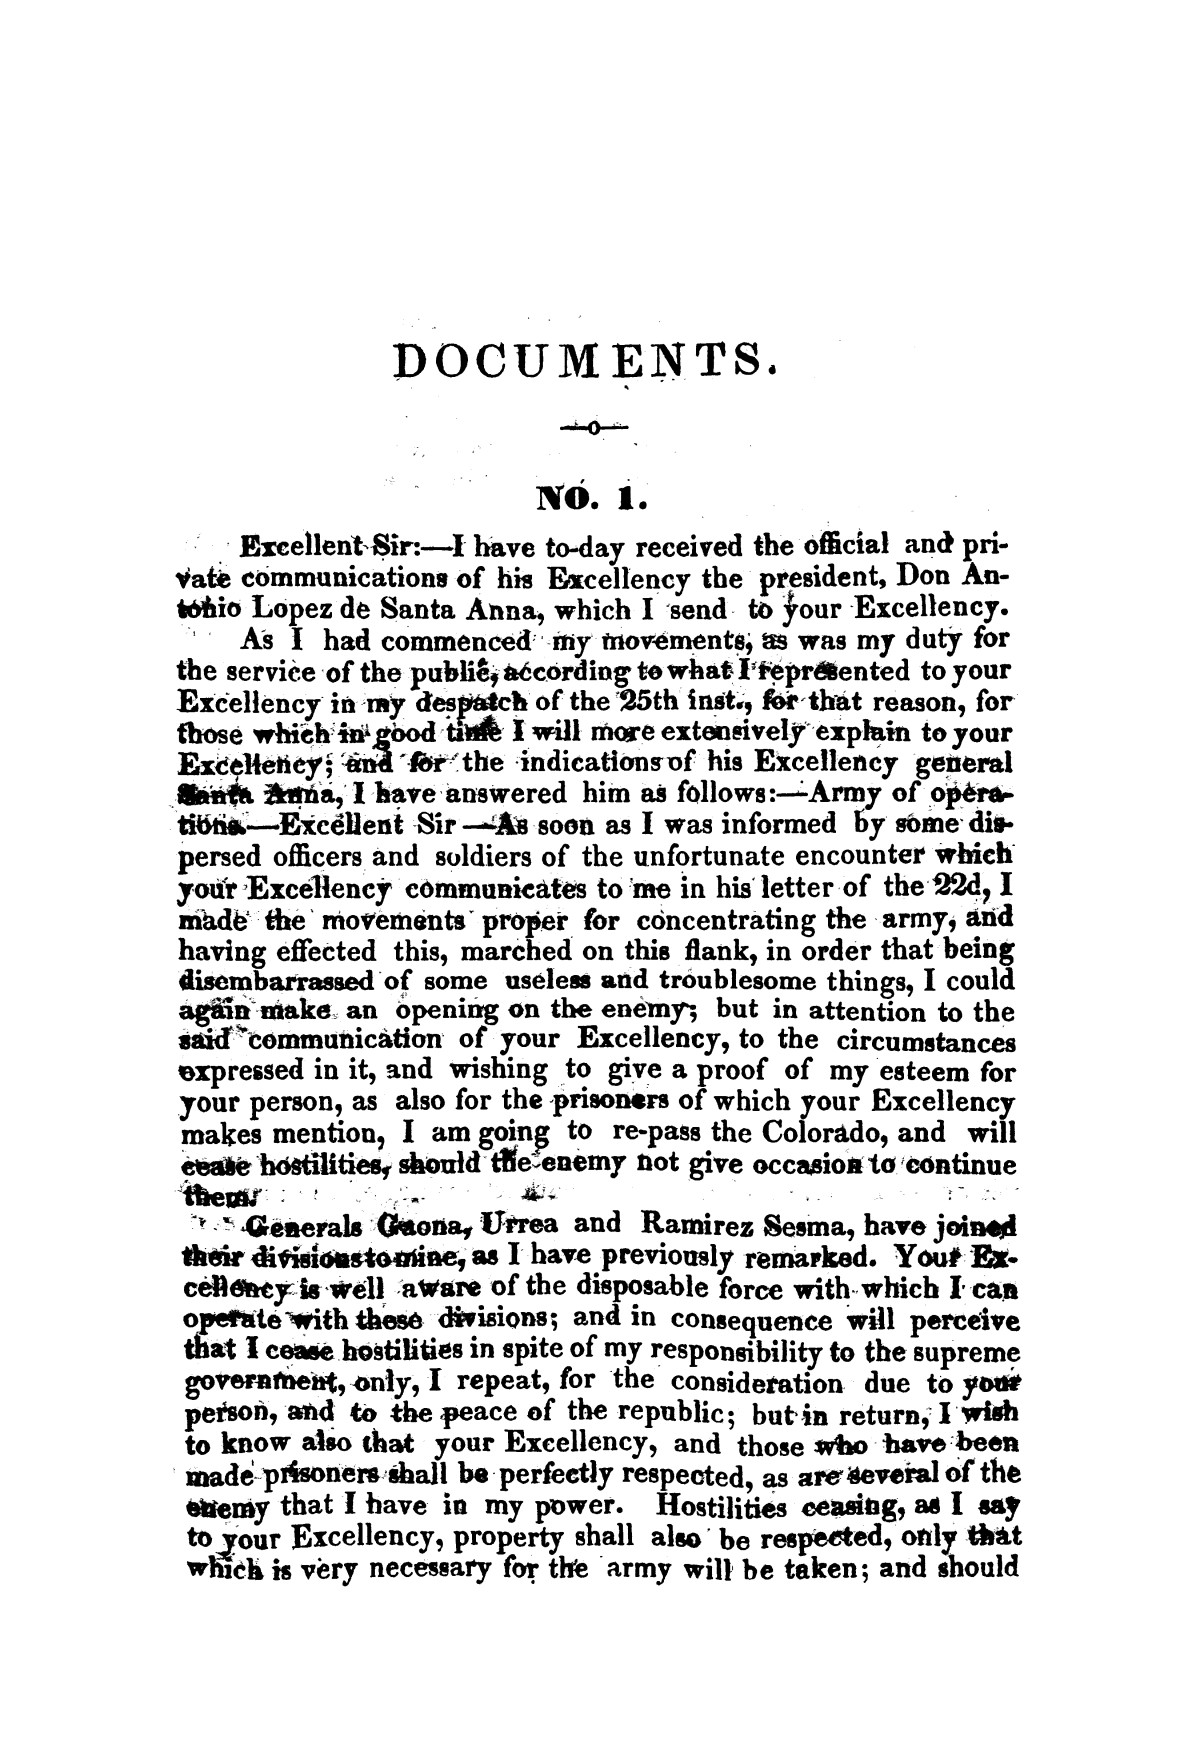 Evacuation of Texas : translation of the Representation addressed to the supreme government / by Vicente Filisola, in defence of his honor, and explanation of his operations as commander-in-chief of the army against Texas.                                                                                                      [Sequence #]: 40 of 72